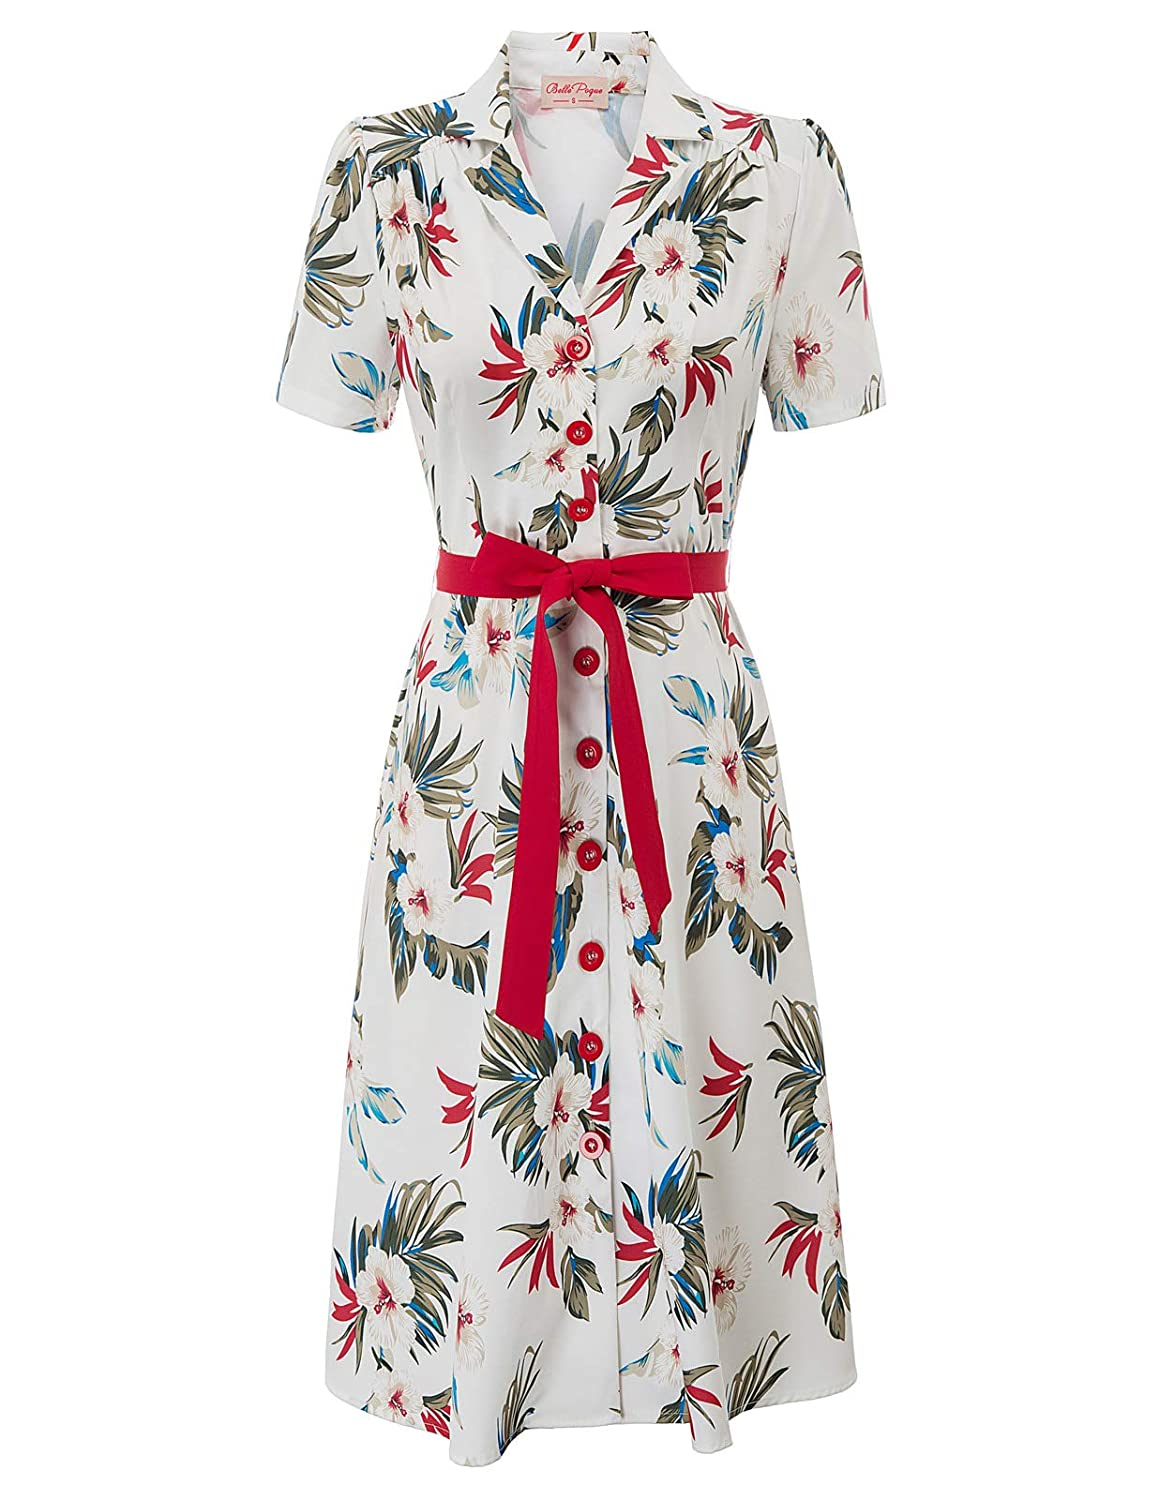 1940s Fashion Advice for Short Women Belle Poque Women Vintage Floral Print Midi Dress 1950s Tea Dress with Belt BP878 $27.99 AT vintagedancer.com